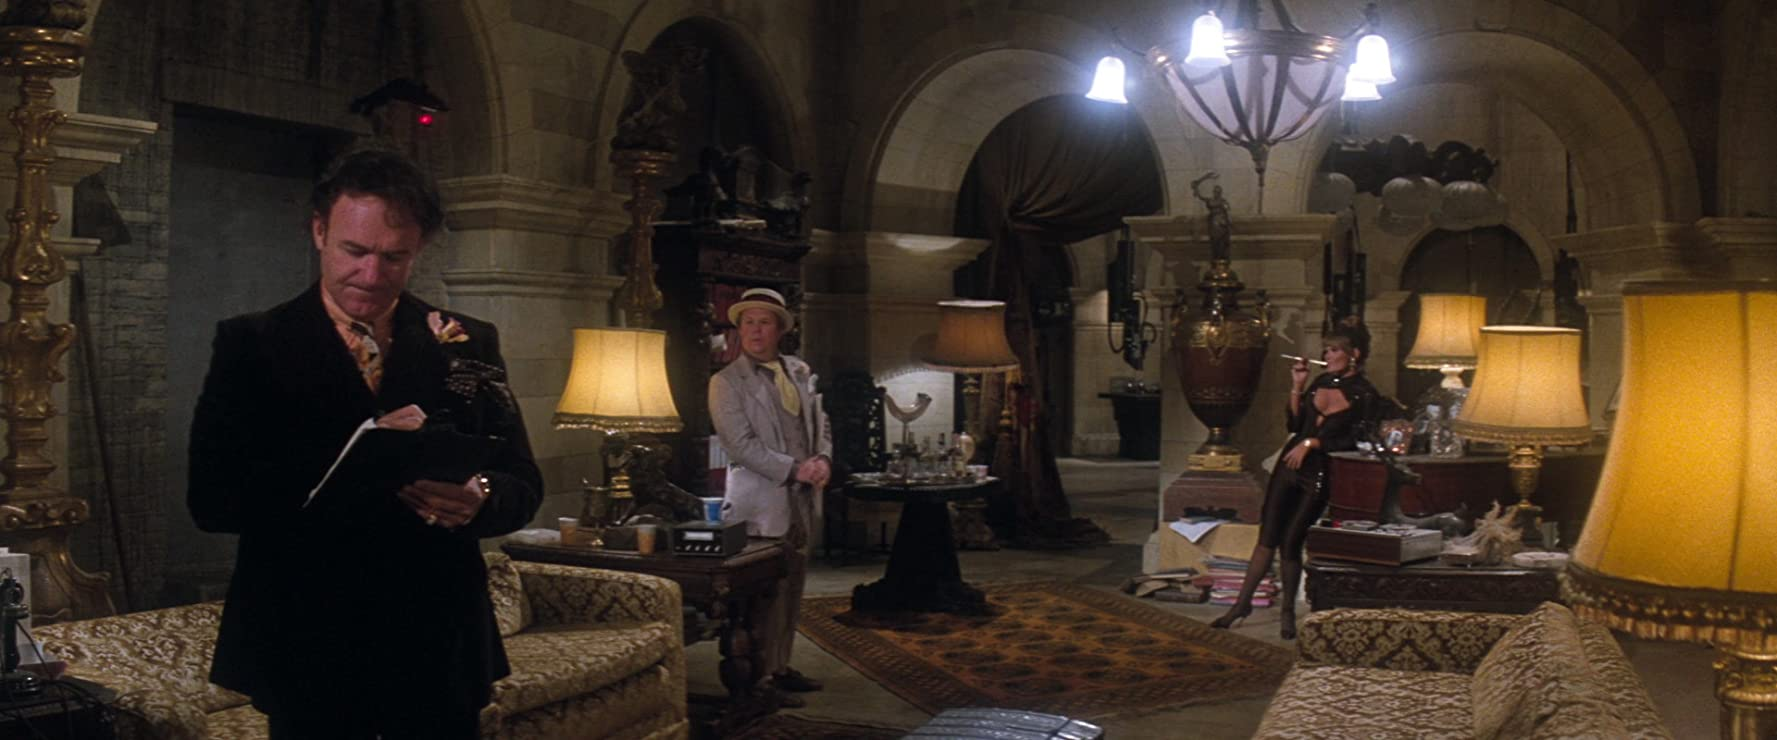 Gene Hackman, Ned Beatty, and Valerie Perrine in Superman (1978)